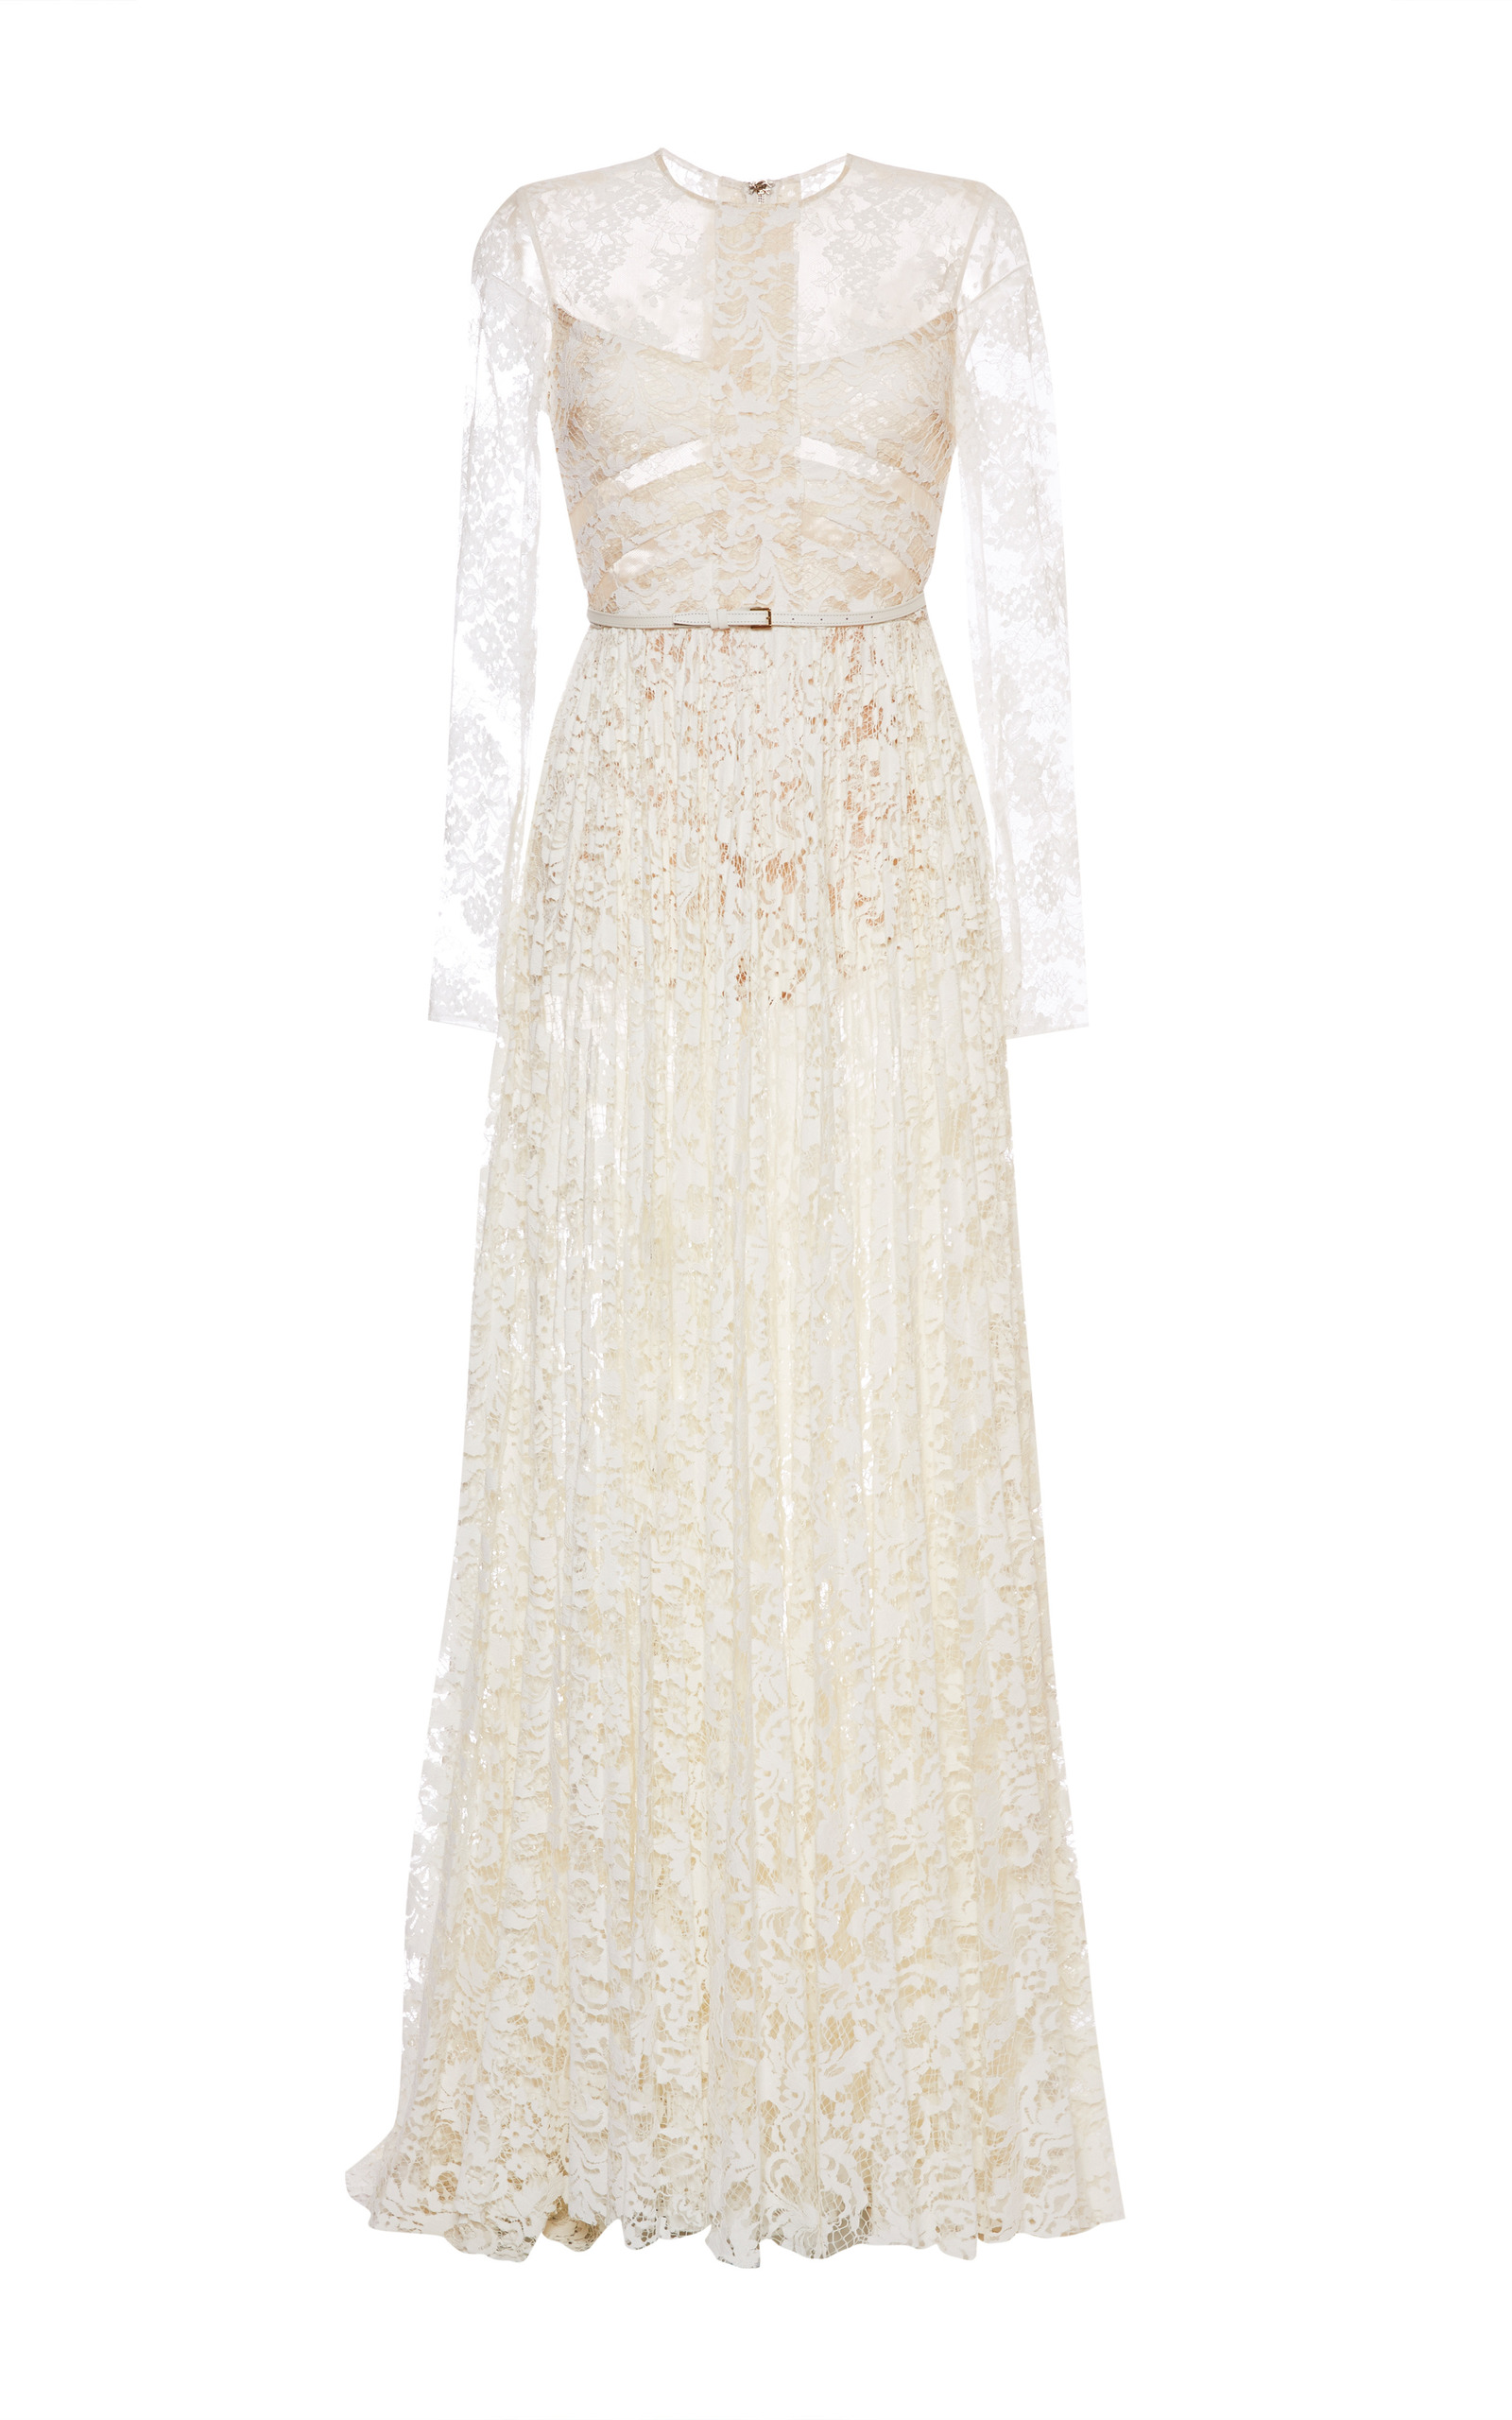 76923941562 Elie SaabWhite Lace Long Sleeve Gown. CLOSE. Loading